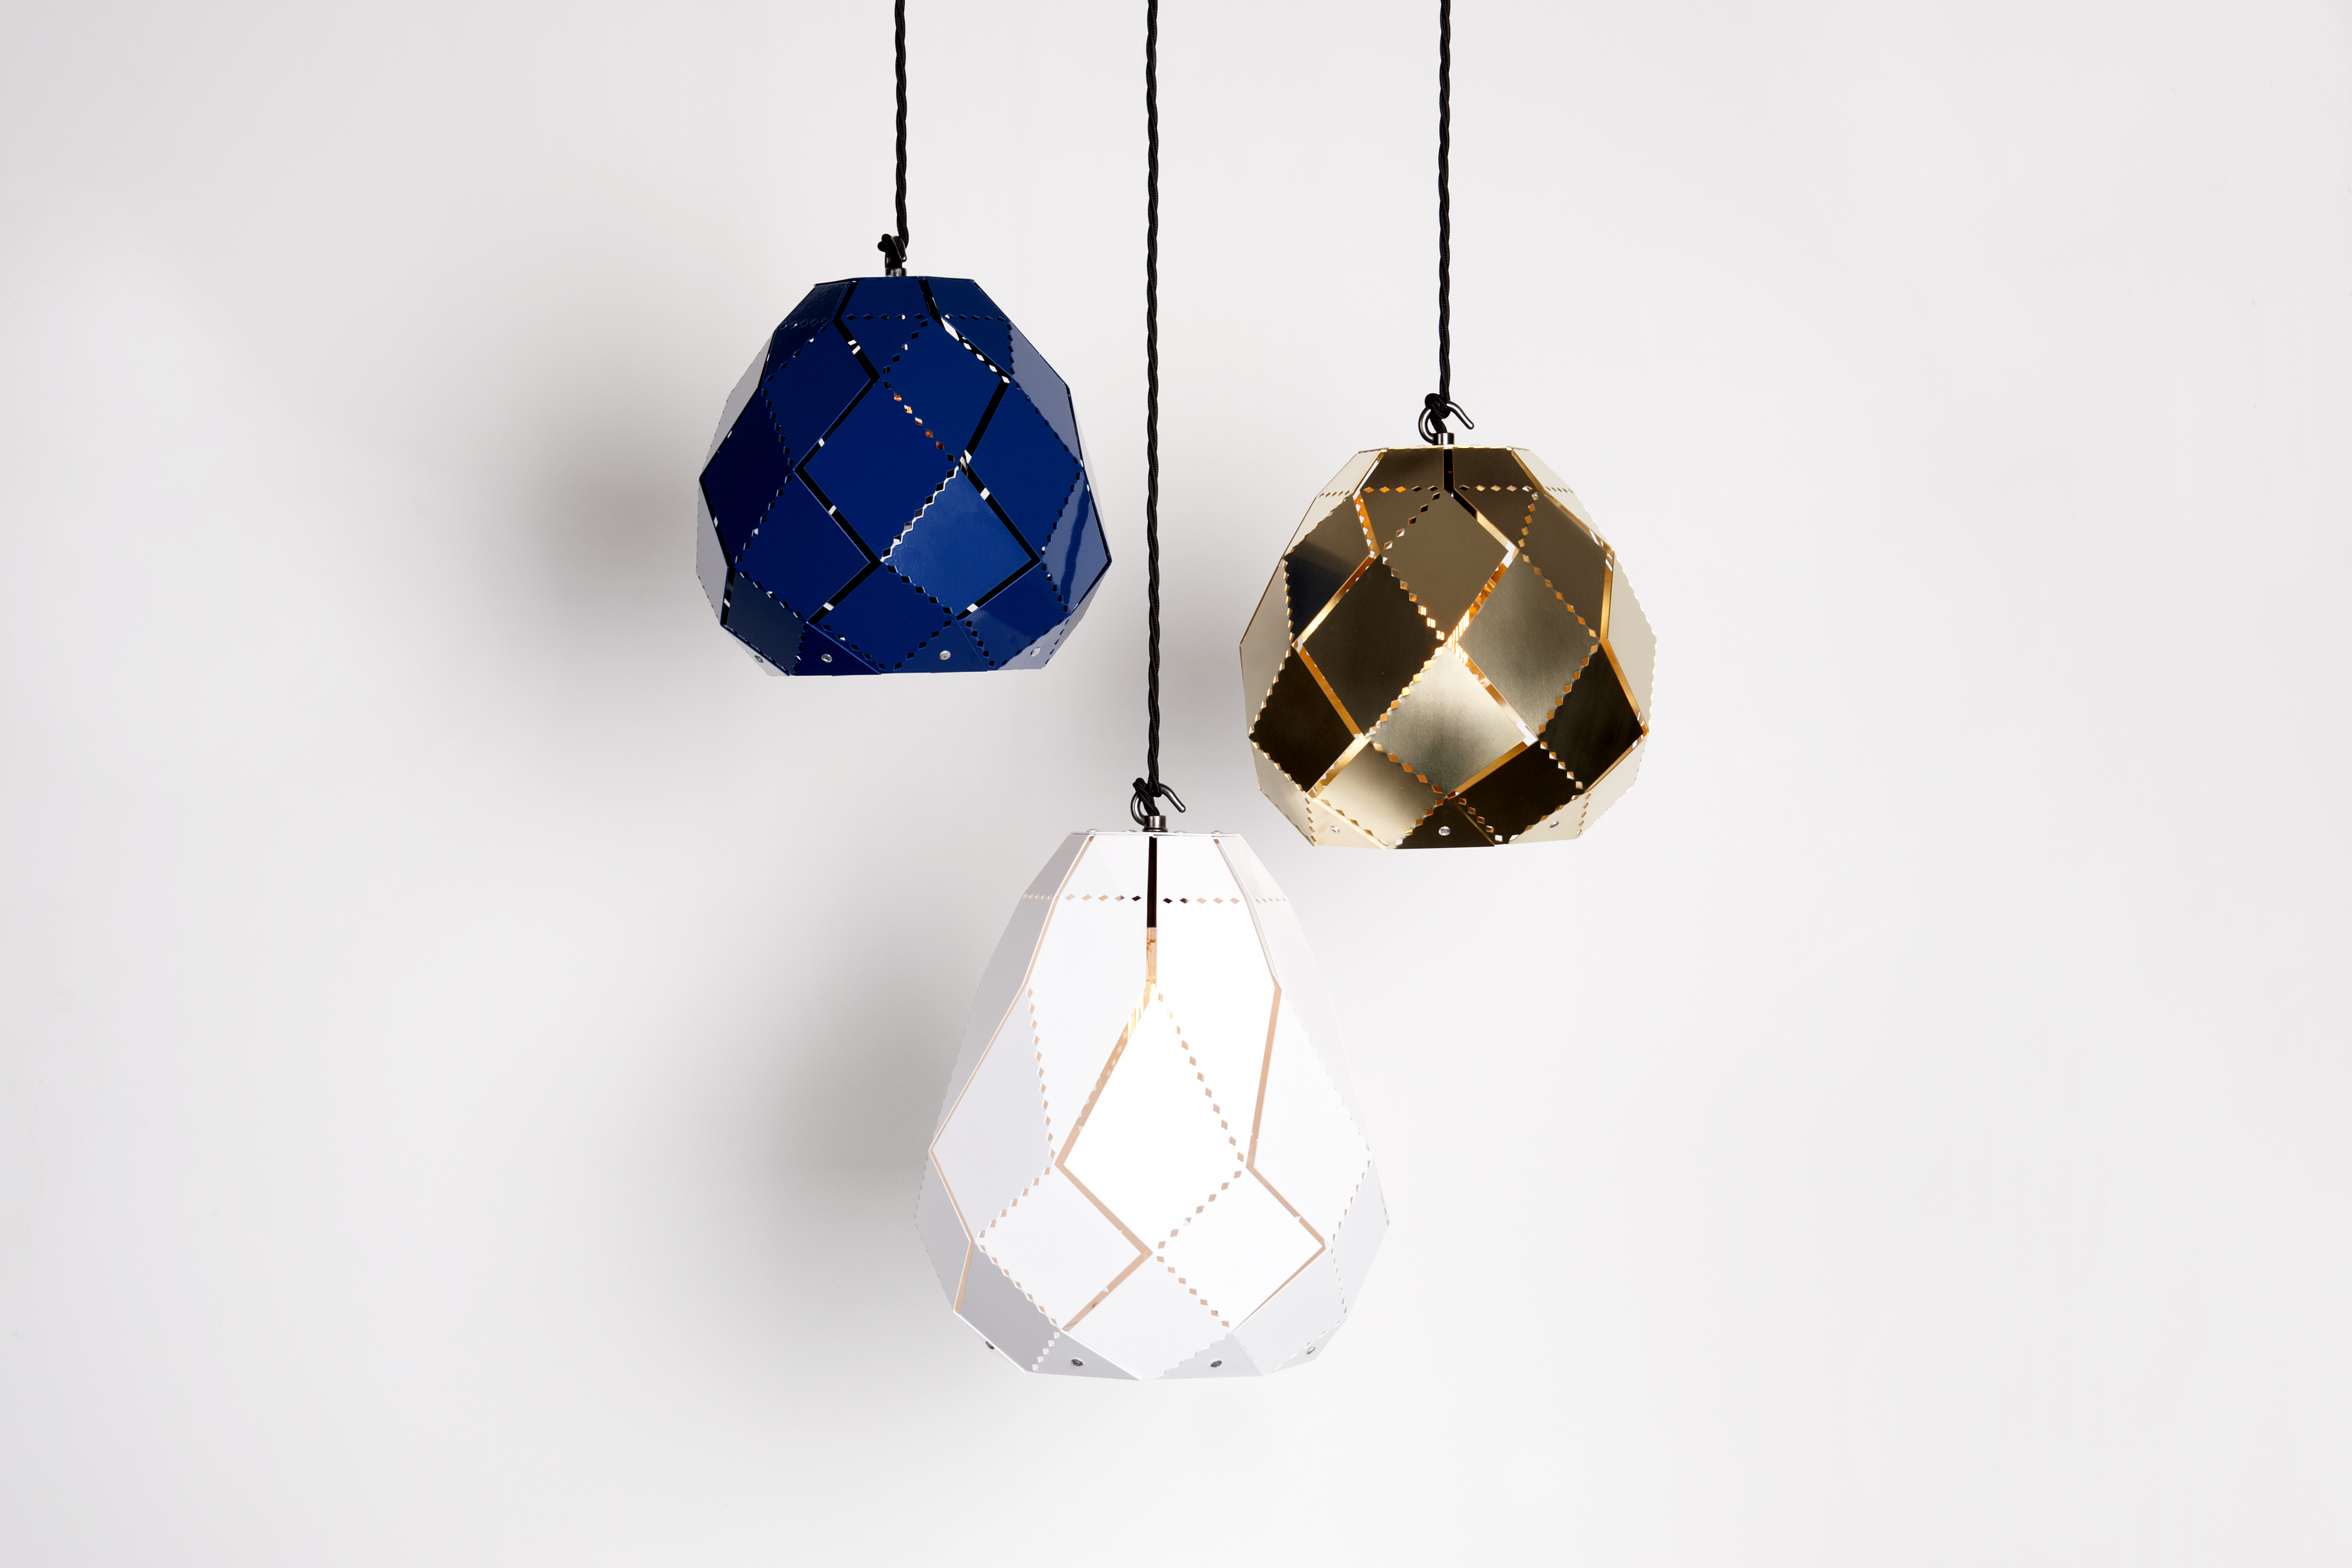 Samuel Bellamy, Moroccan Lamps (cluster) - New Designers 2016, One Year On